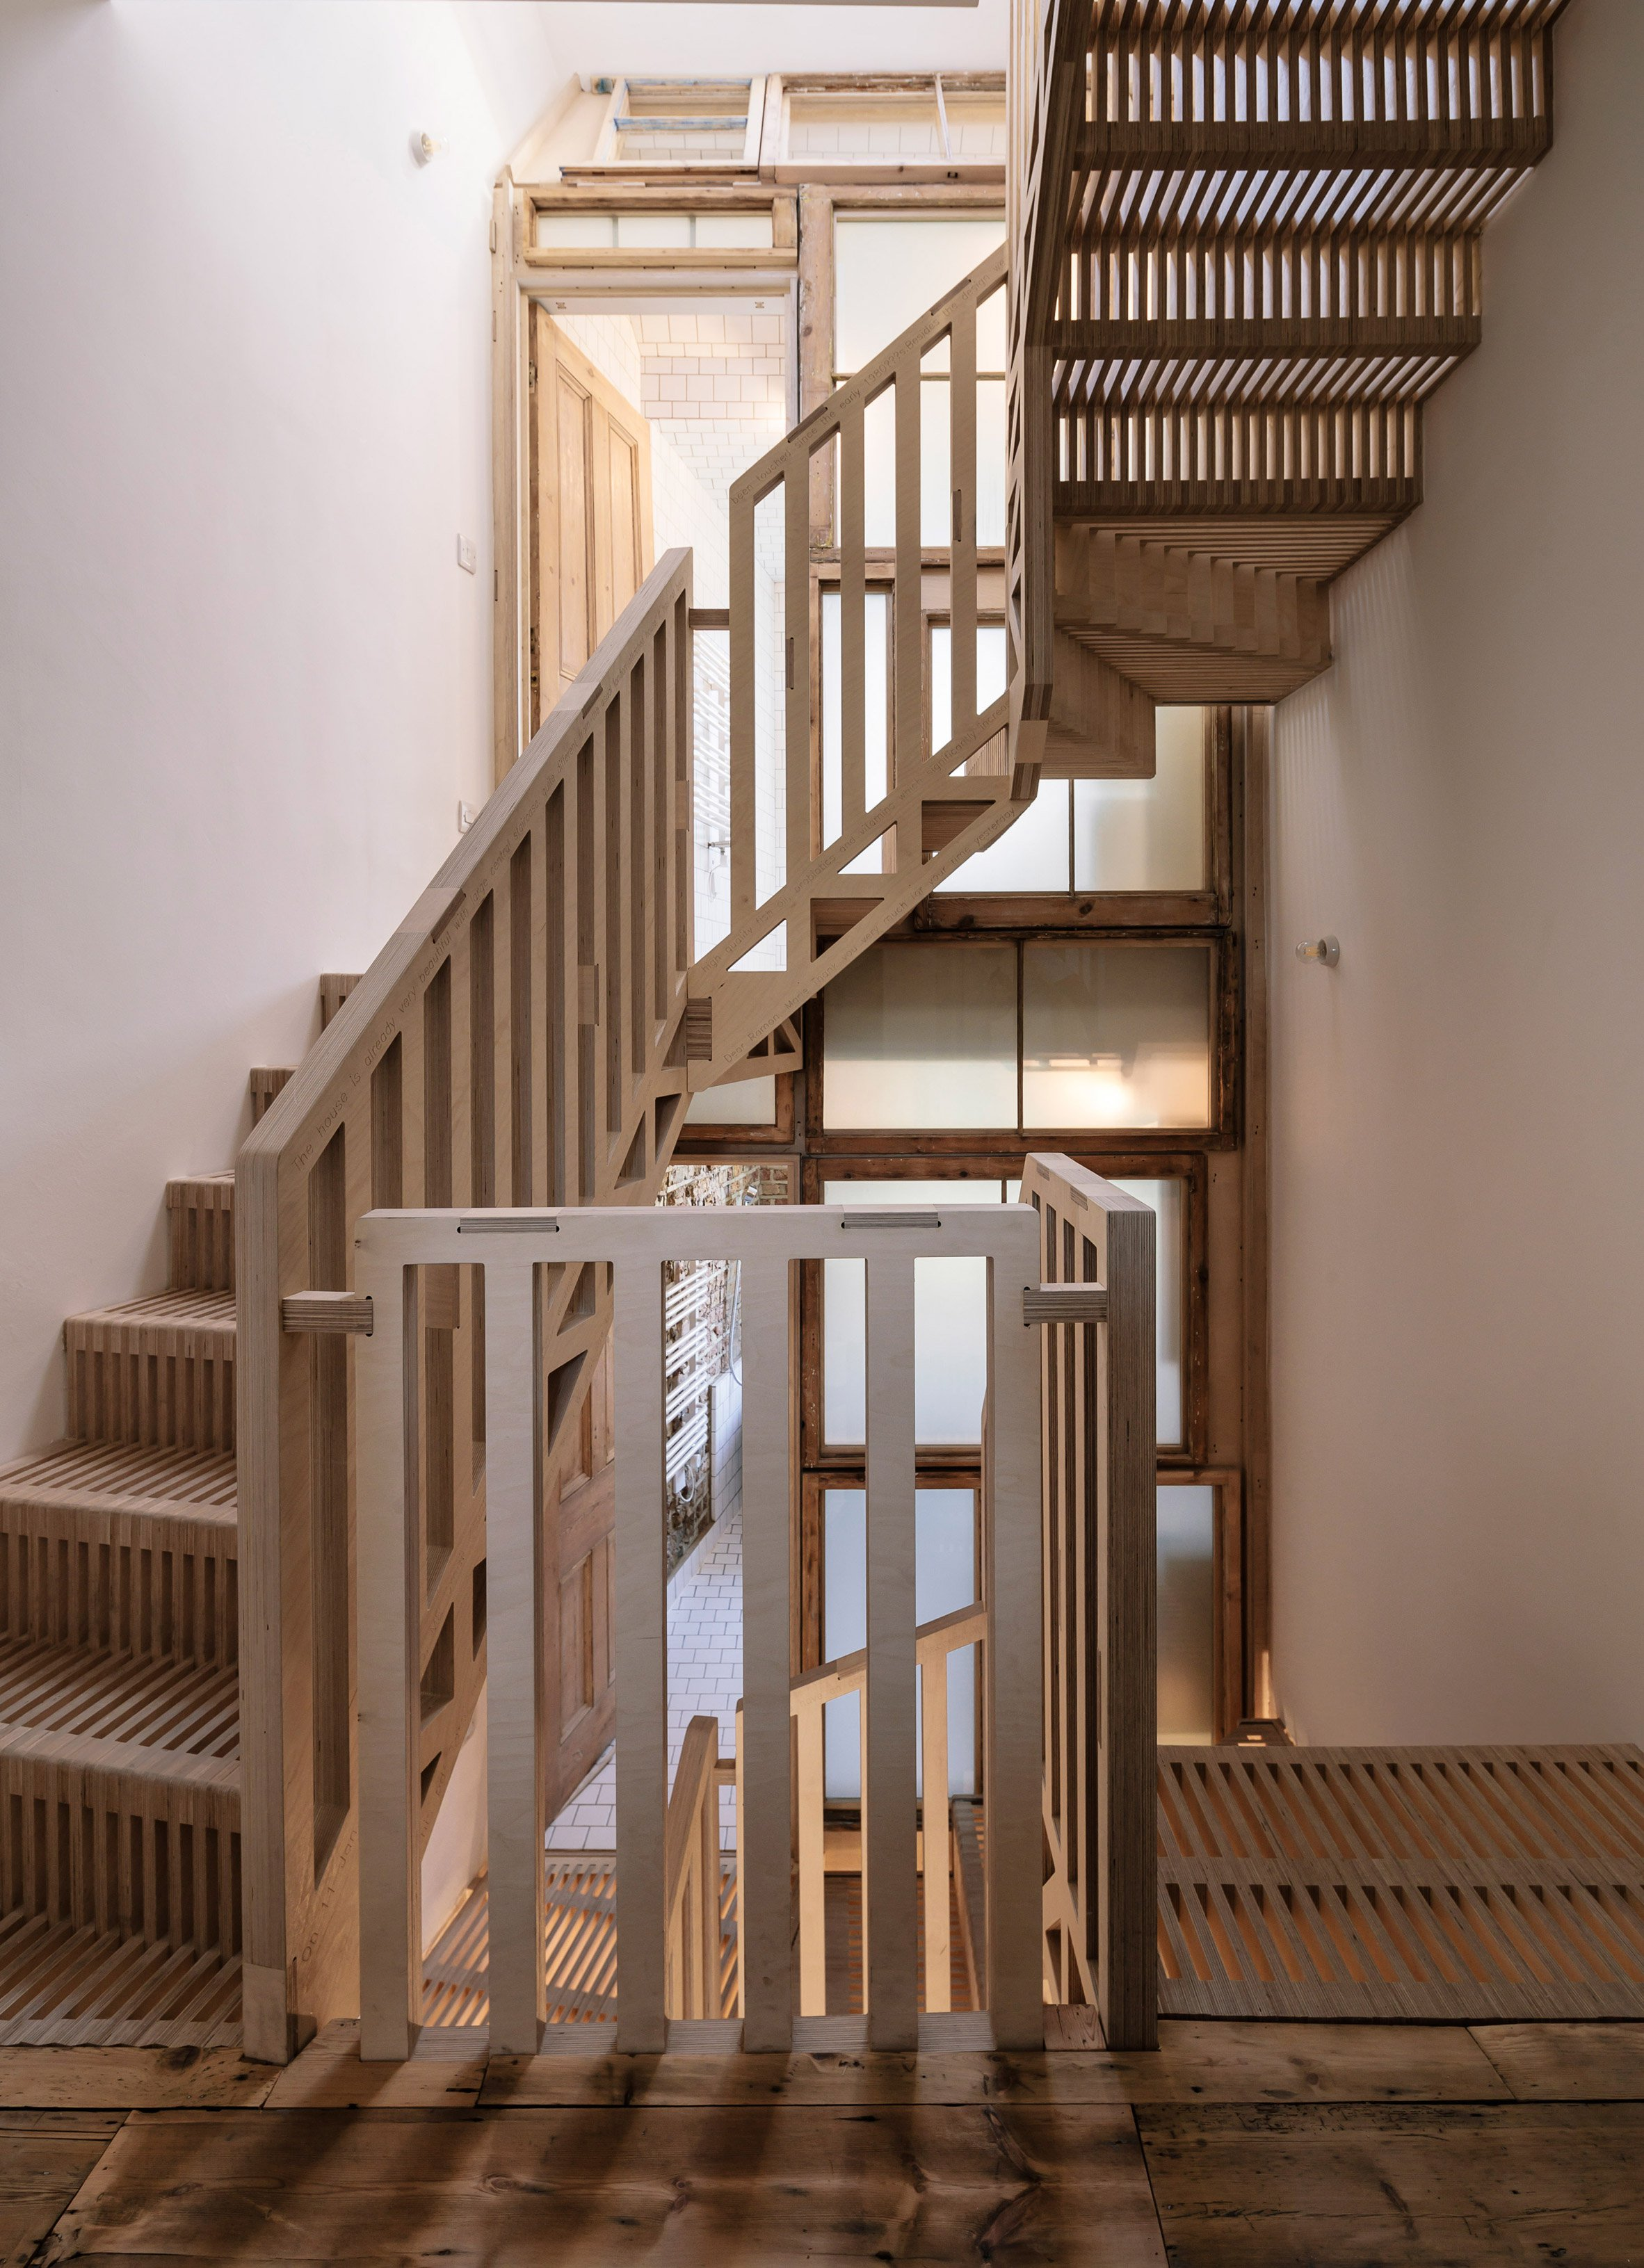 plywood-staircase